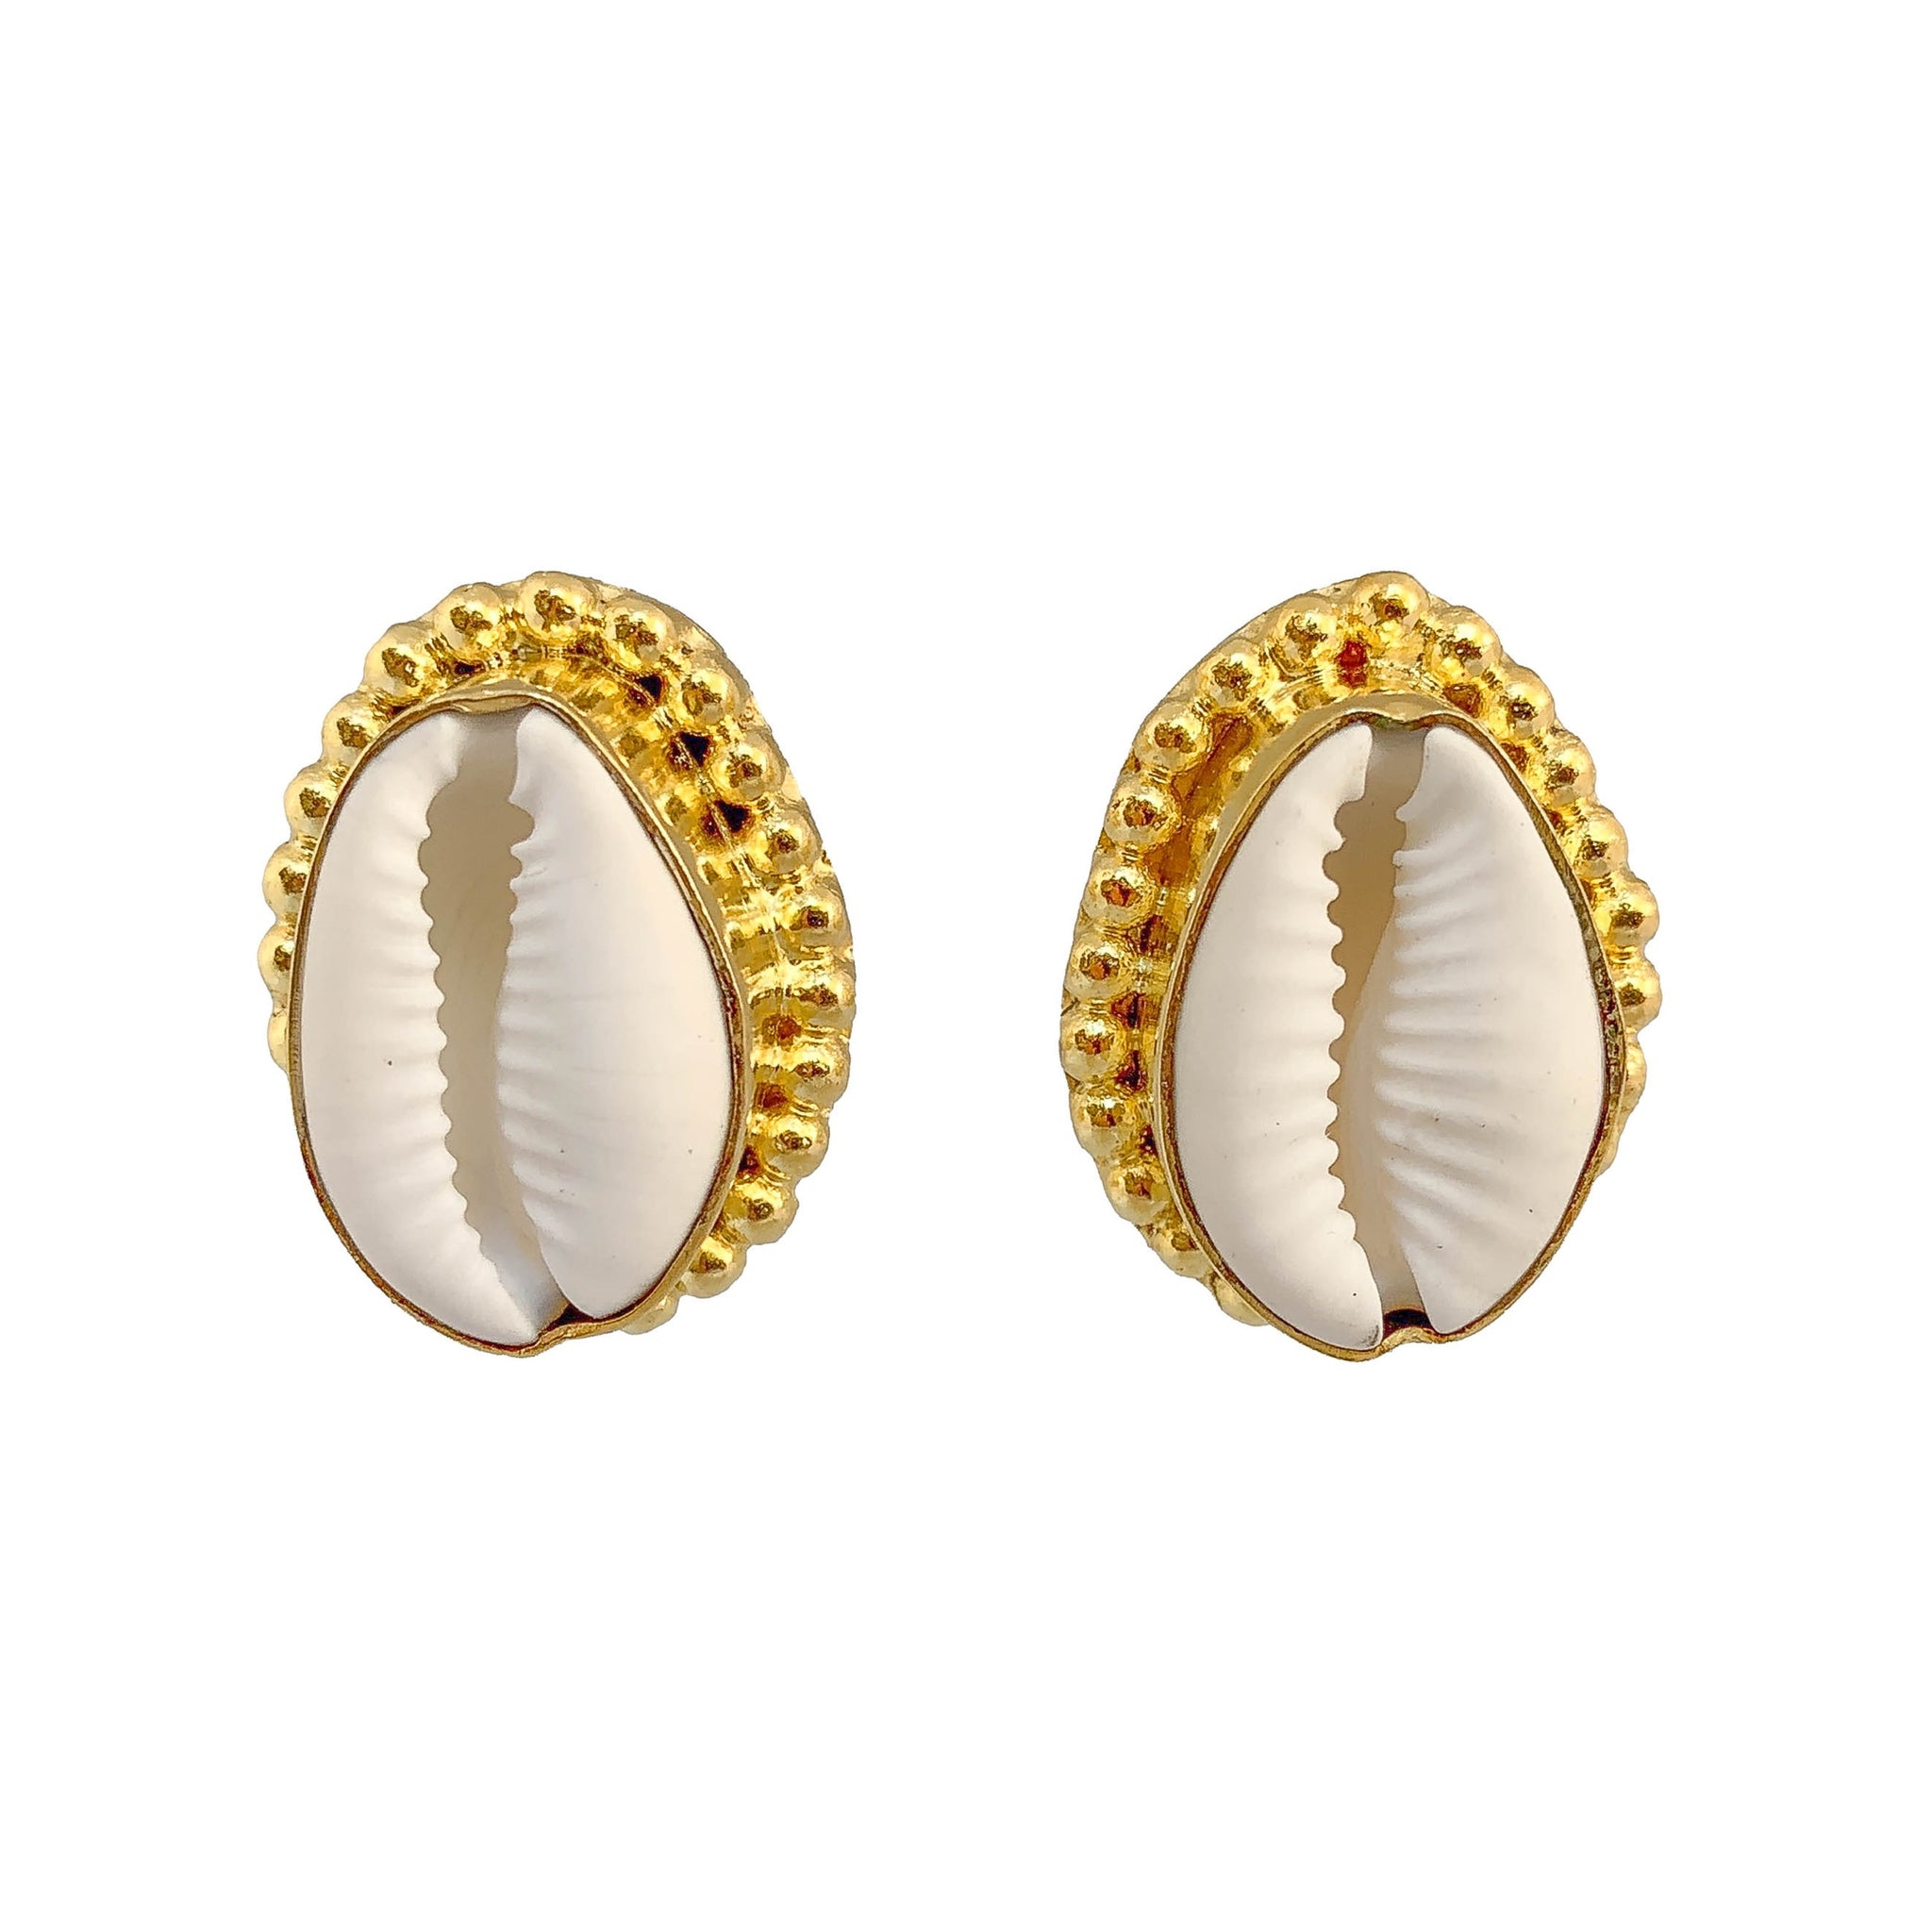 Gold Plated Stud Earrings | Unique Handcrafted Earrings | Shell Earrings by Tanya Litkovska